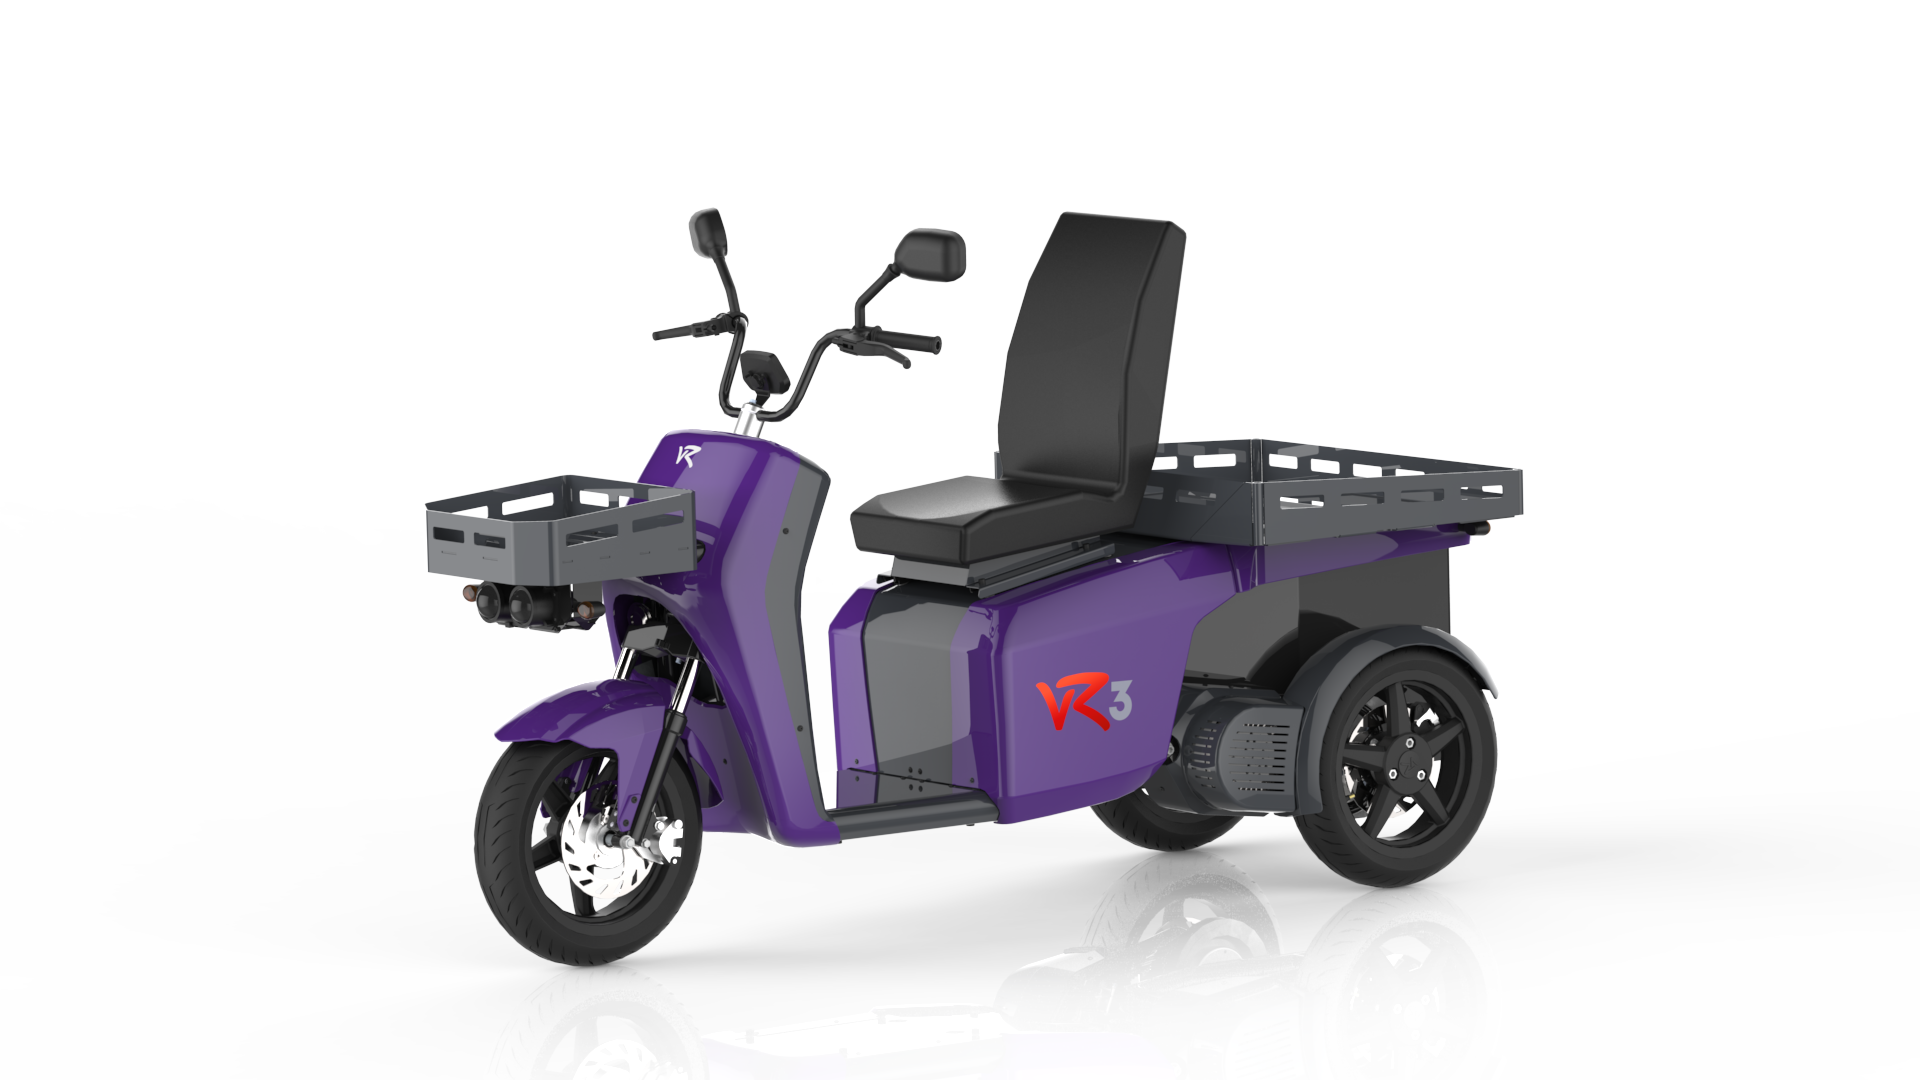 The vR3 electric tricycle as an intra-company transport vehicle for all types of lightweight transportation